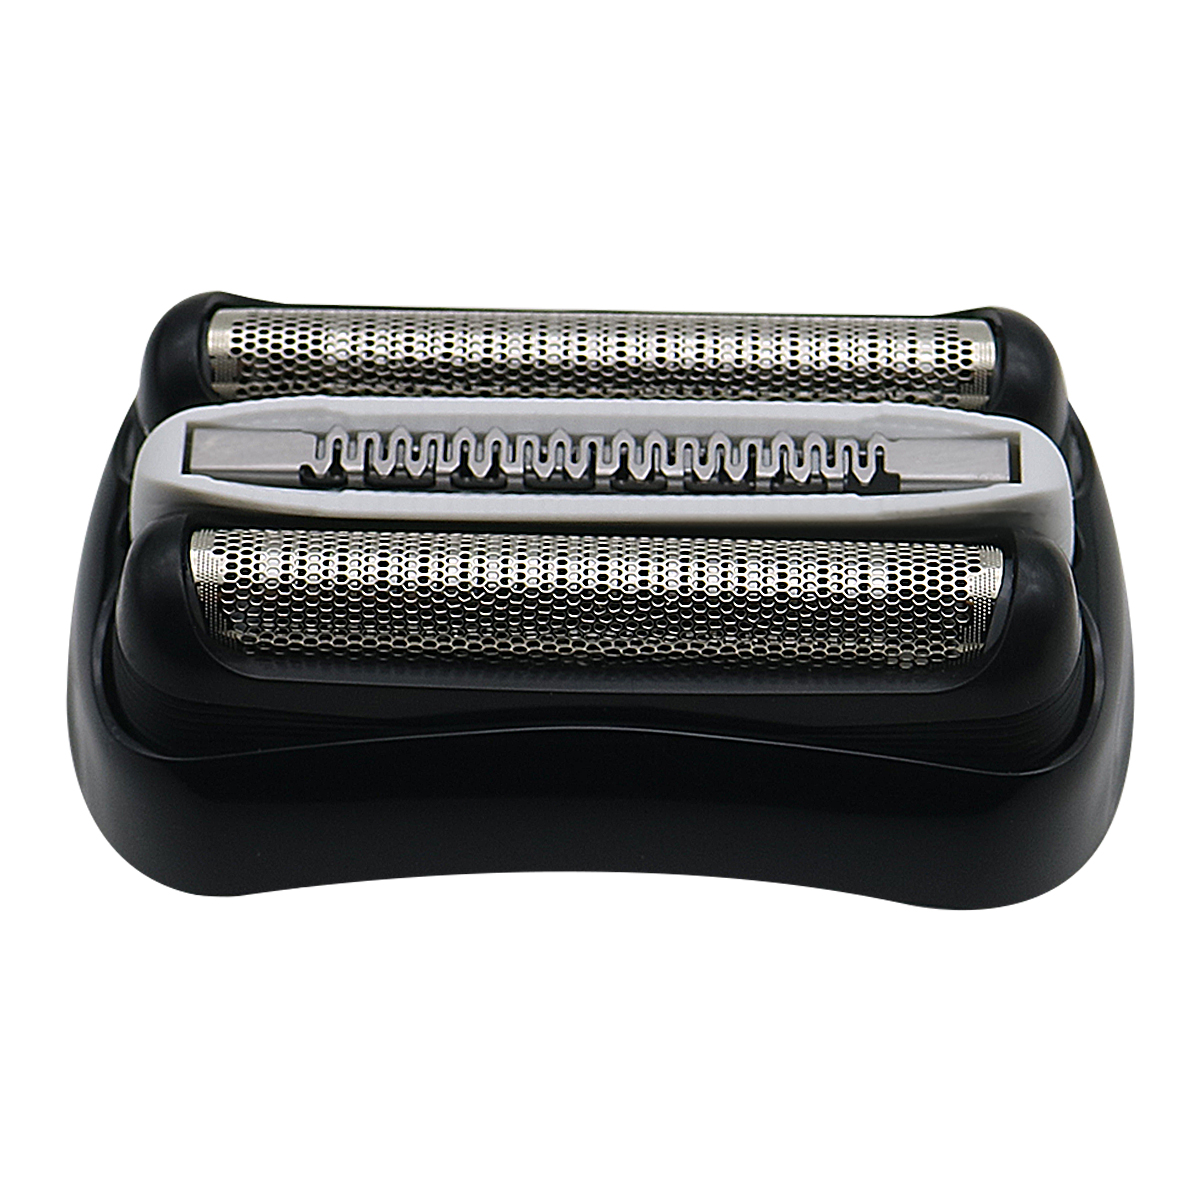 32B For Braun Series 3 Electric Shaver  Head 320 330 340 350 380 300s 301s 310s 3000s 3010s 3020s 330S-4 3050cc  3040s